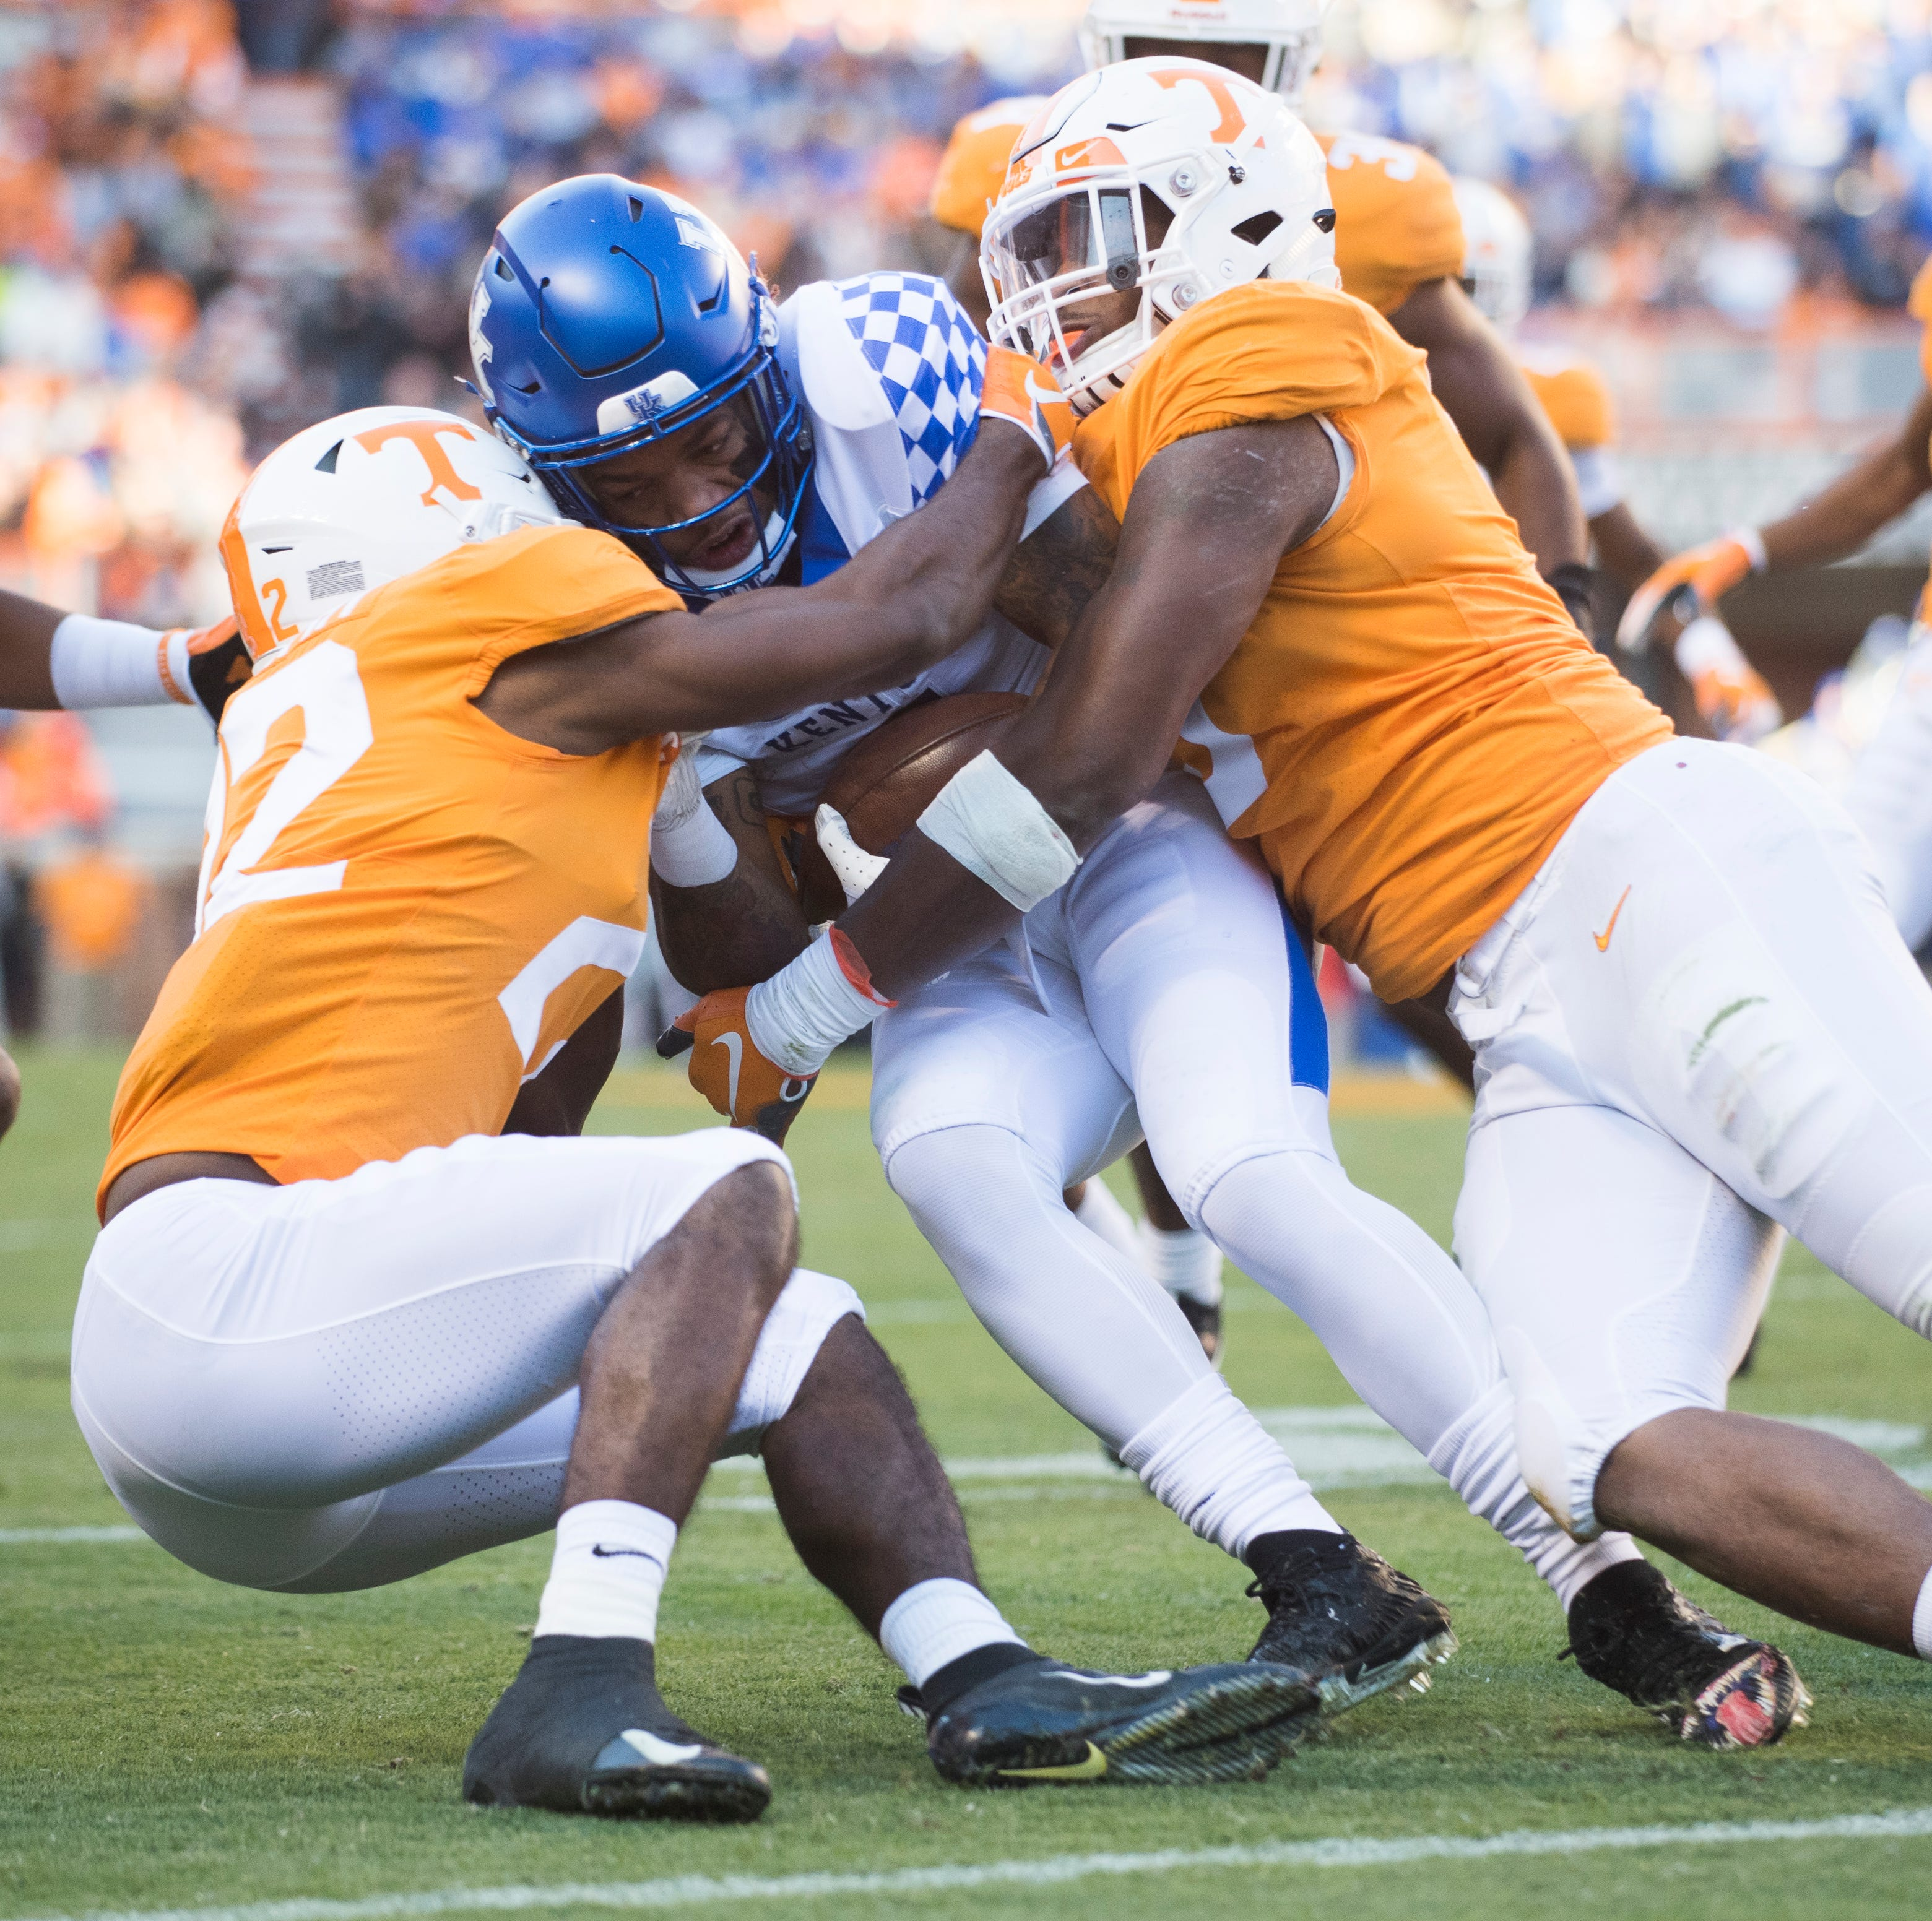 UT Vols football vs Missouri: 5 things to know for Saturday's game